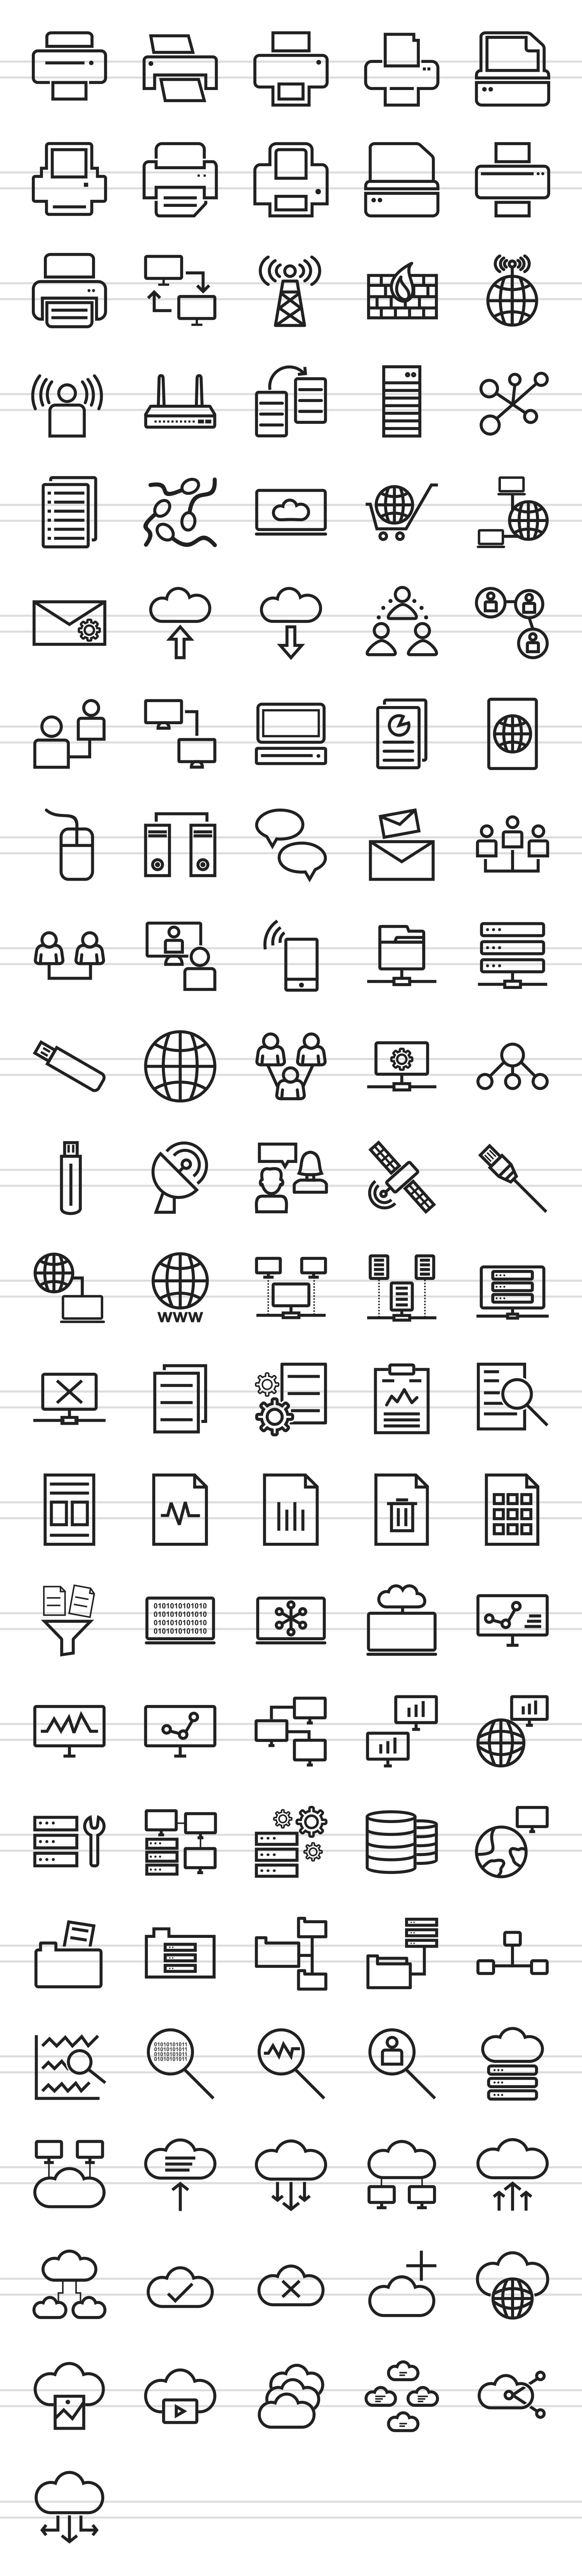 111 Networking & Printers Line Icons example image 2